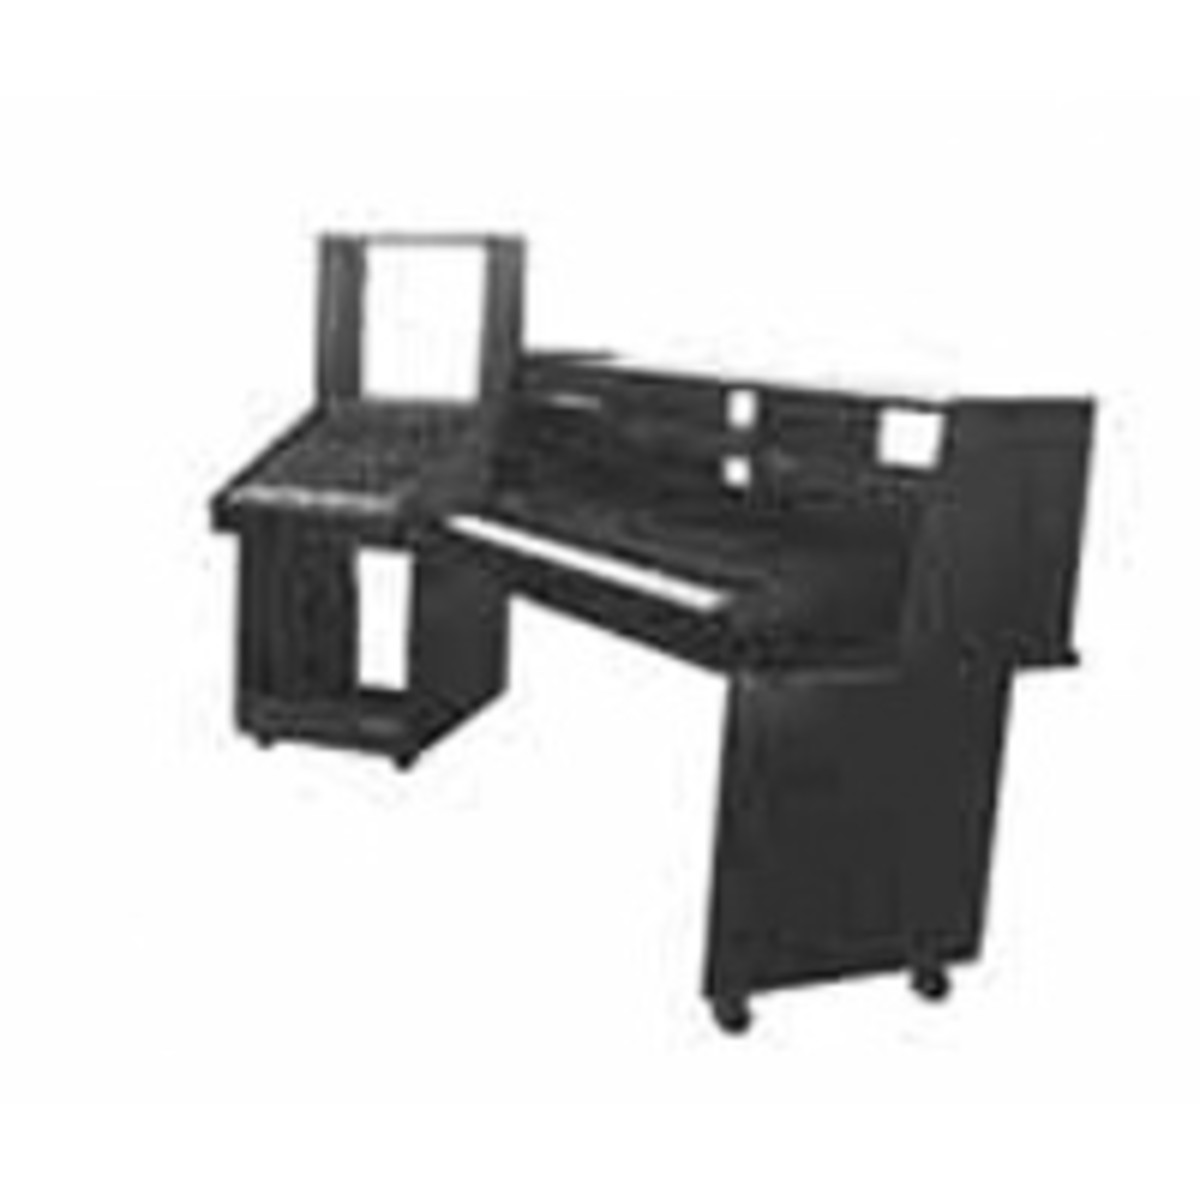 Omnirax Wda Angled Workstation Desk At Gear4music